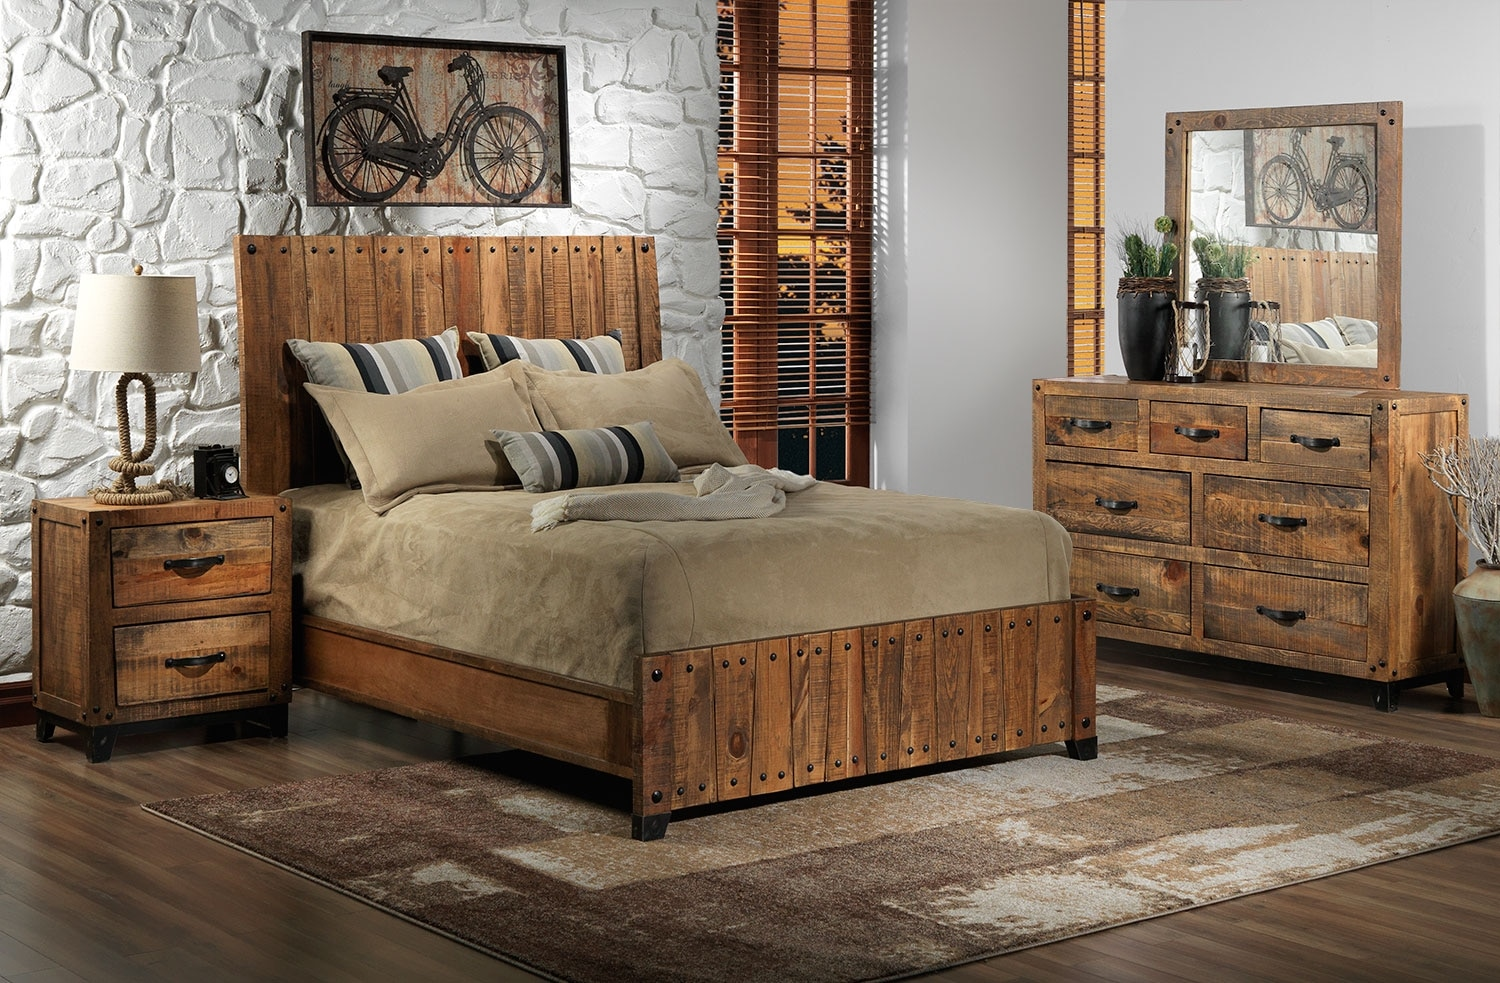 Bedroom Furniture - Maya 5-Piece Queen Bedroom Set - Rustic Pine